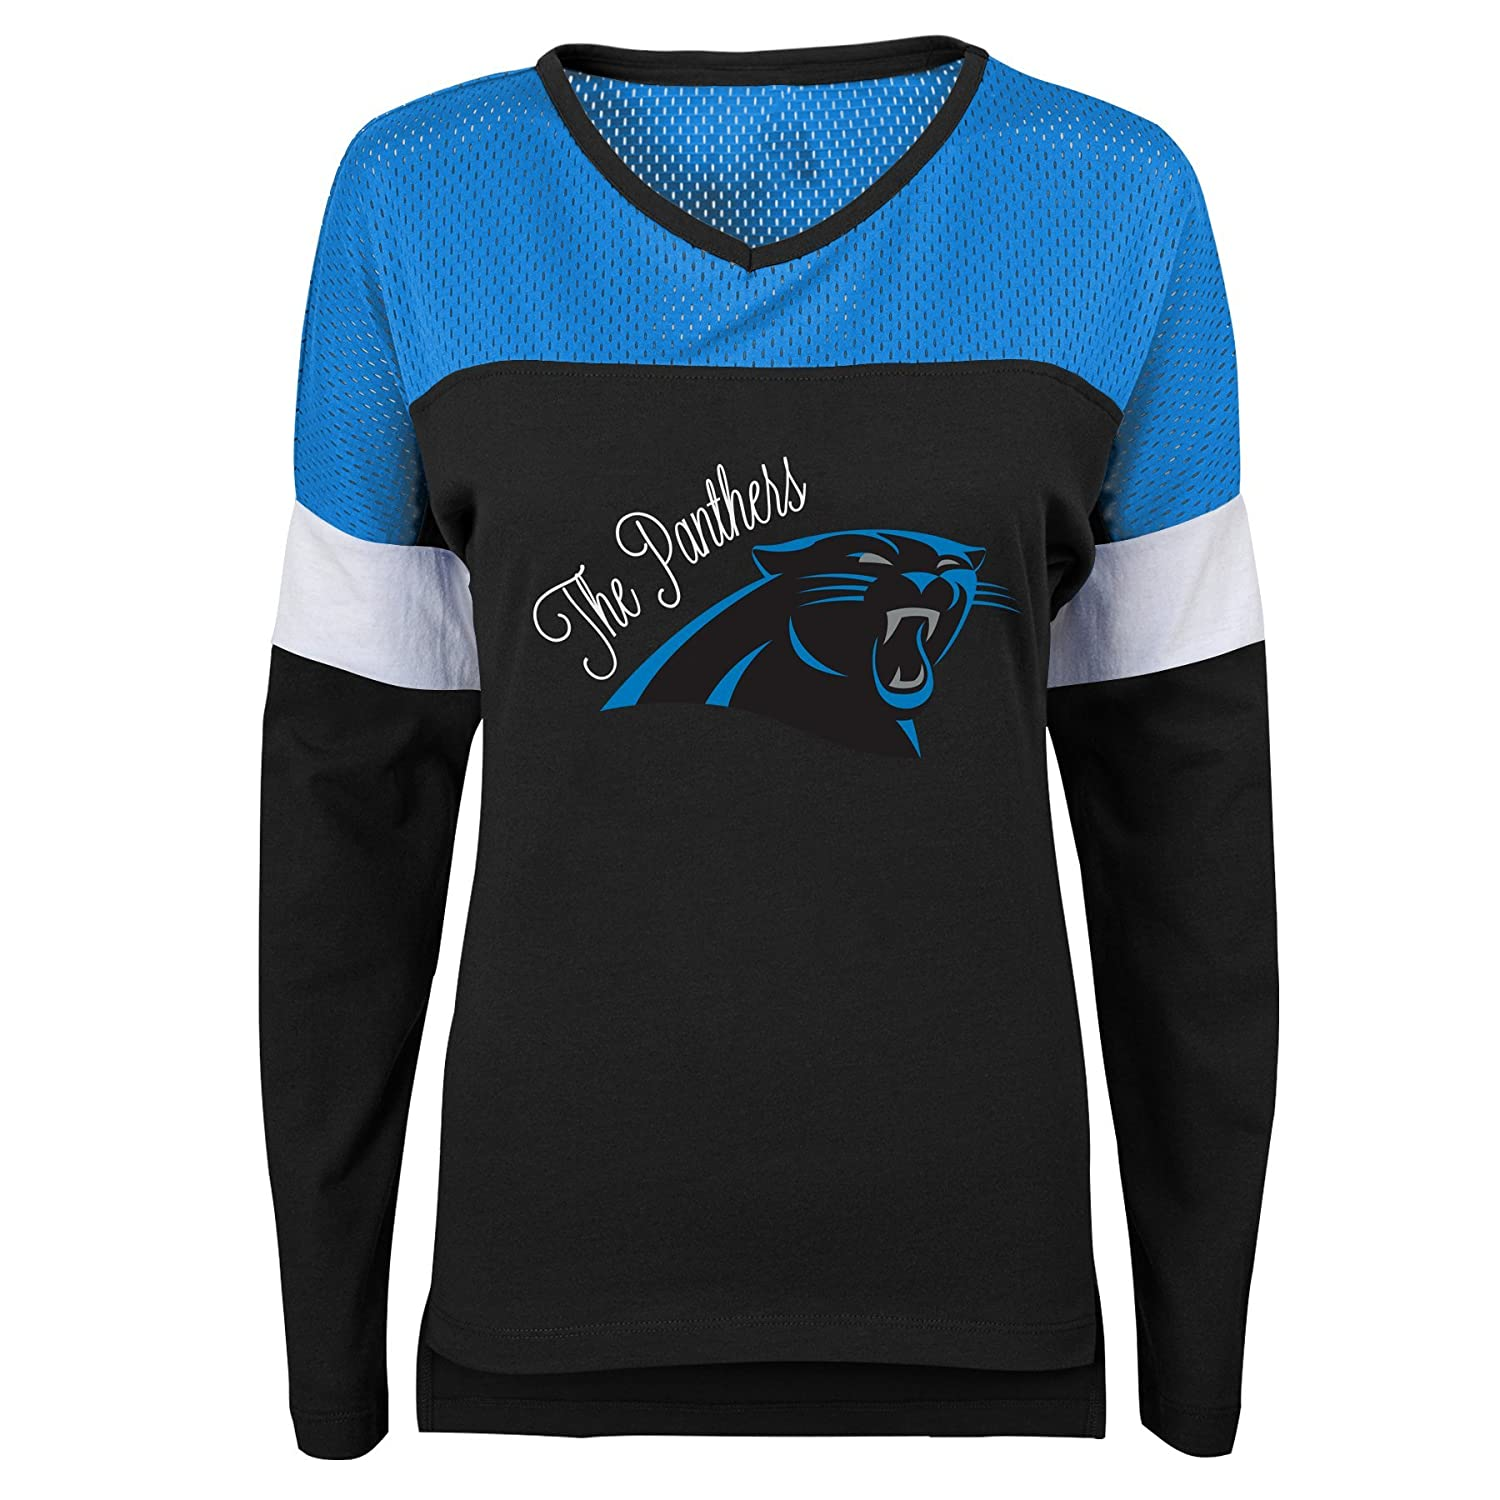 Juniors X-Small 0-1 Outerstuff NFL NFL Carolina Panthers Juniors Team Blocker Long Sleeve Tee Black